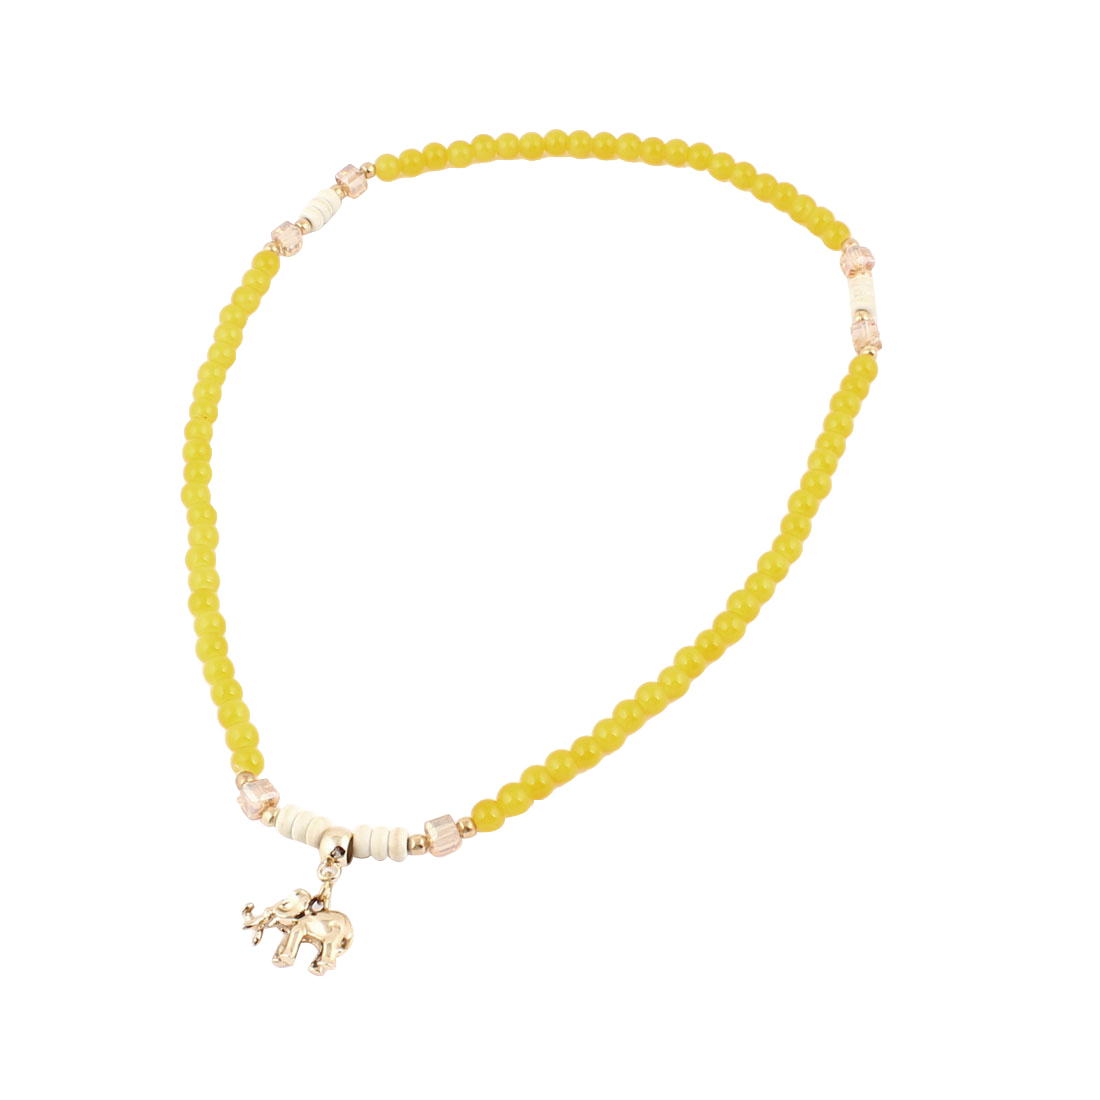 Girls Elephant Decor Plastic Beads Stretchy Necklace Ring Bracelet Yellow